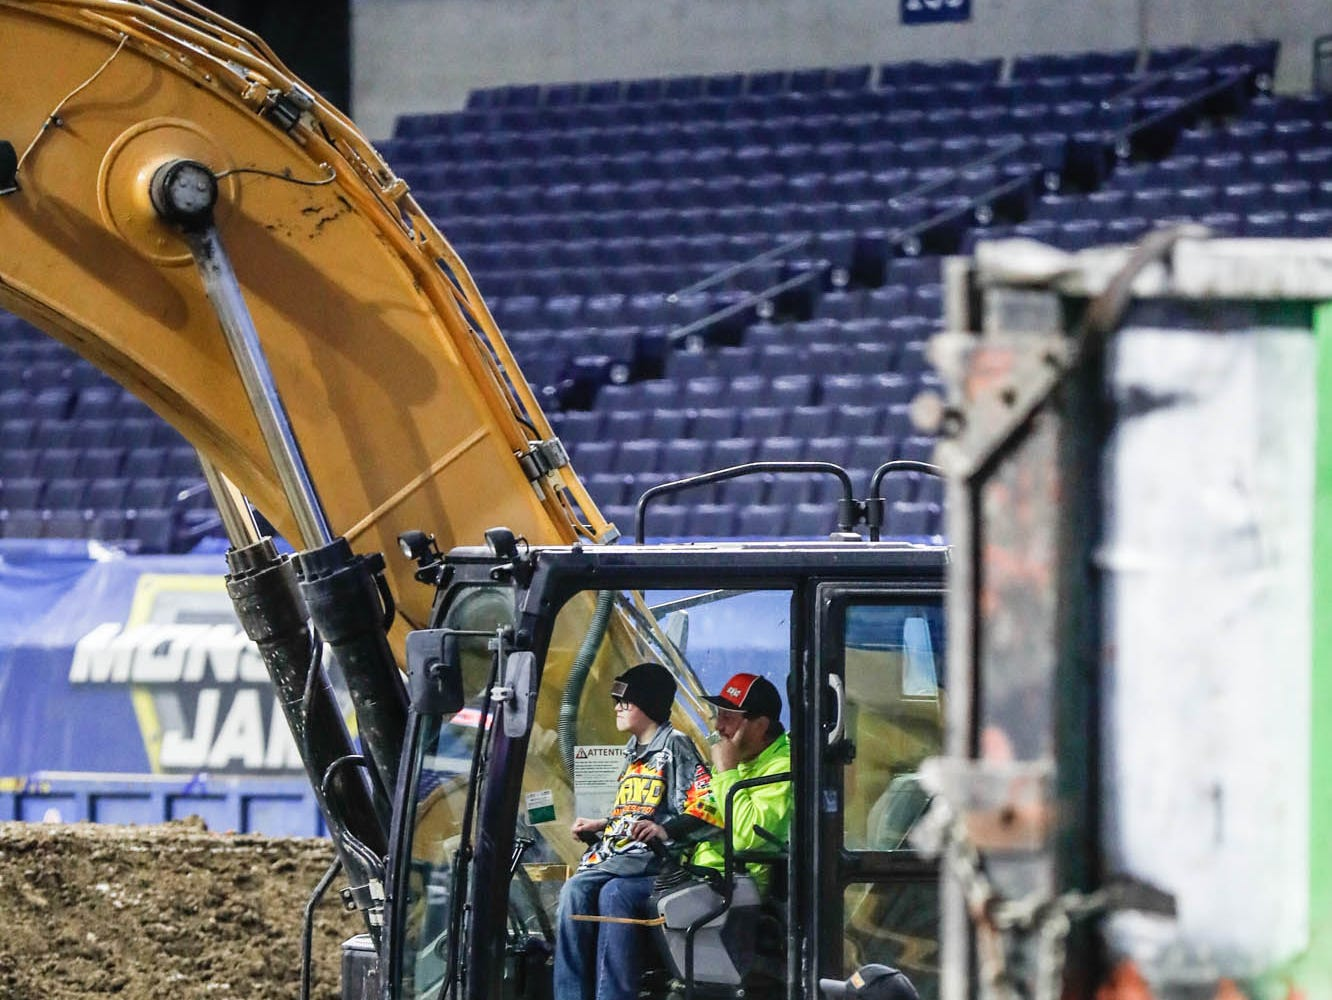 St. Barnabas Catholic School fourth grader, James Egold, who just completed chemo therapy, gets to dig a hole with an excavator and see how the dirt track is built for Monster Jam at Lucas Oil Stadium on Thursday, Feb. 7, 2019. The visit was thanks to a team up by Monster Jam and Love Your Melon to remodel Egold's room at home while Egold met with Maximum Destruction monster truck driver Tom Meents.